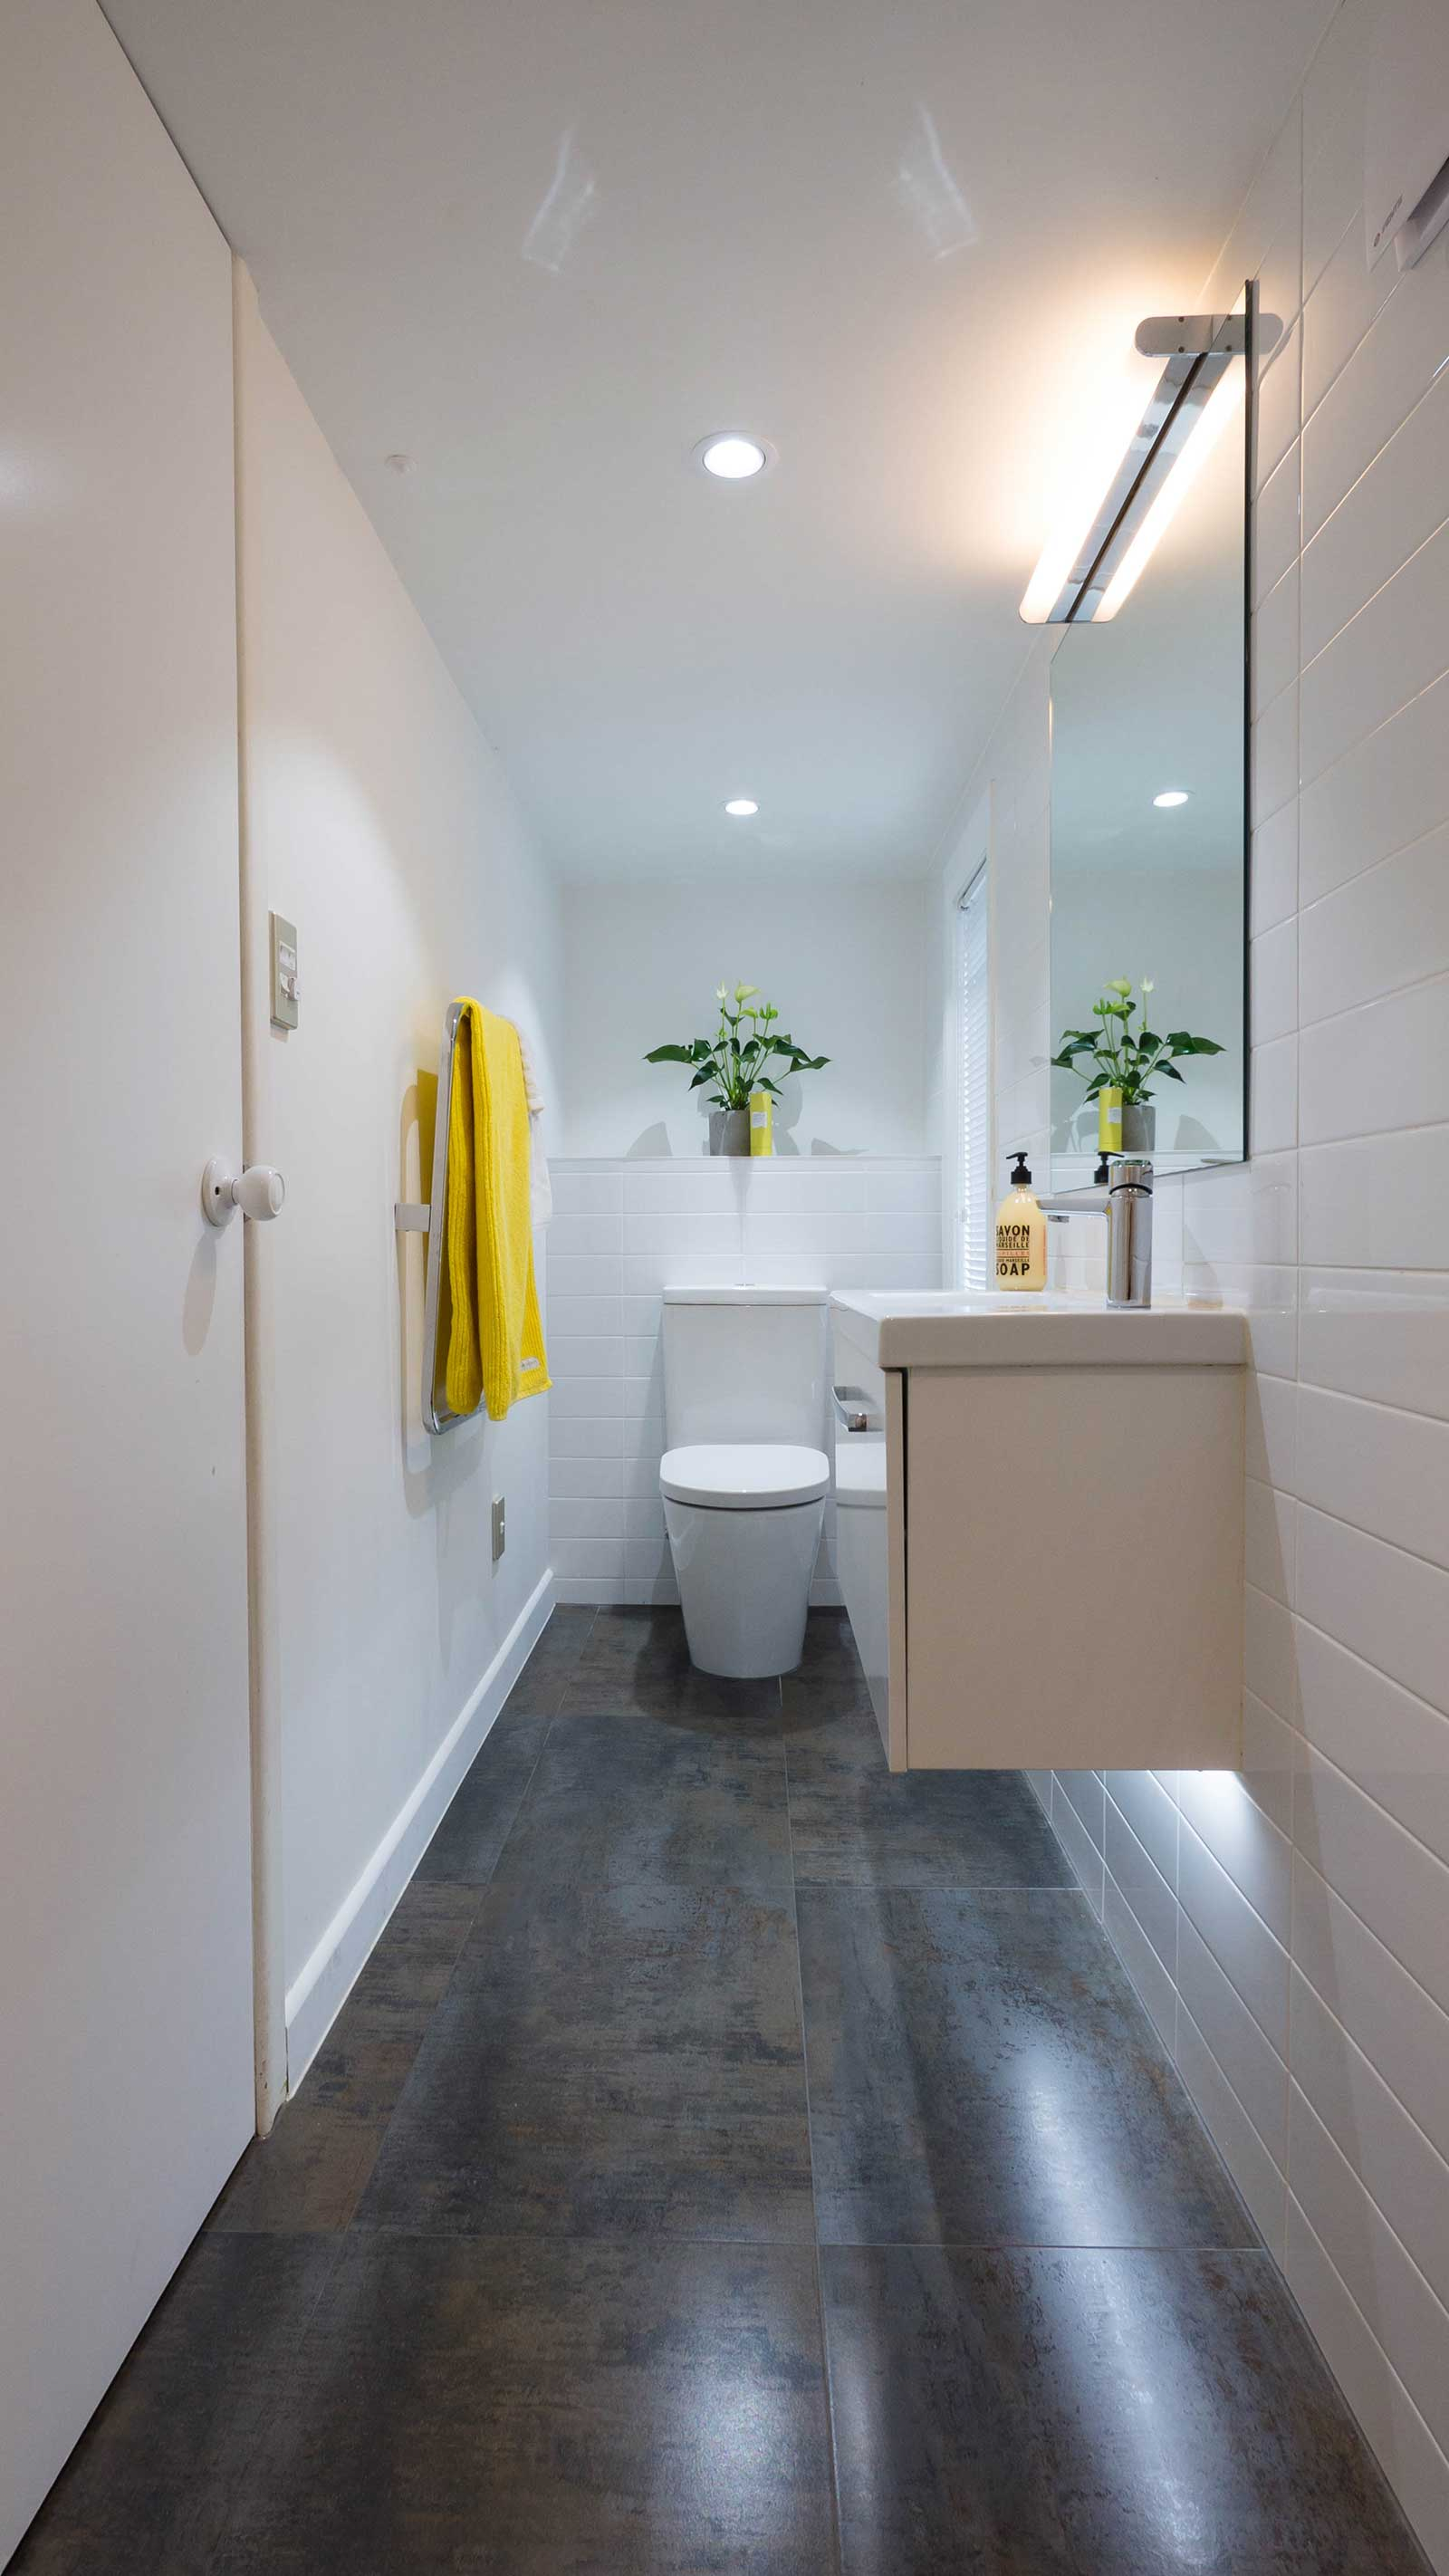 Wonderful bathroom design auckland gallery simple design for Bathroom decor nz